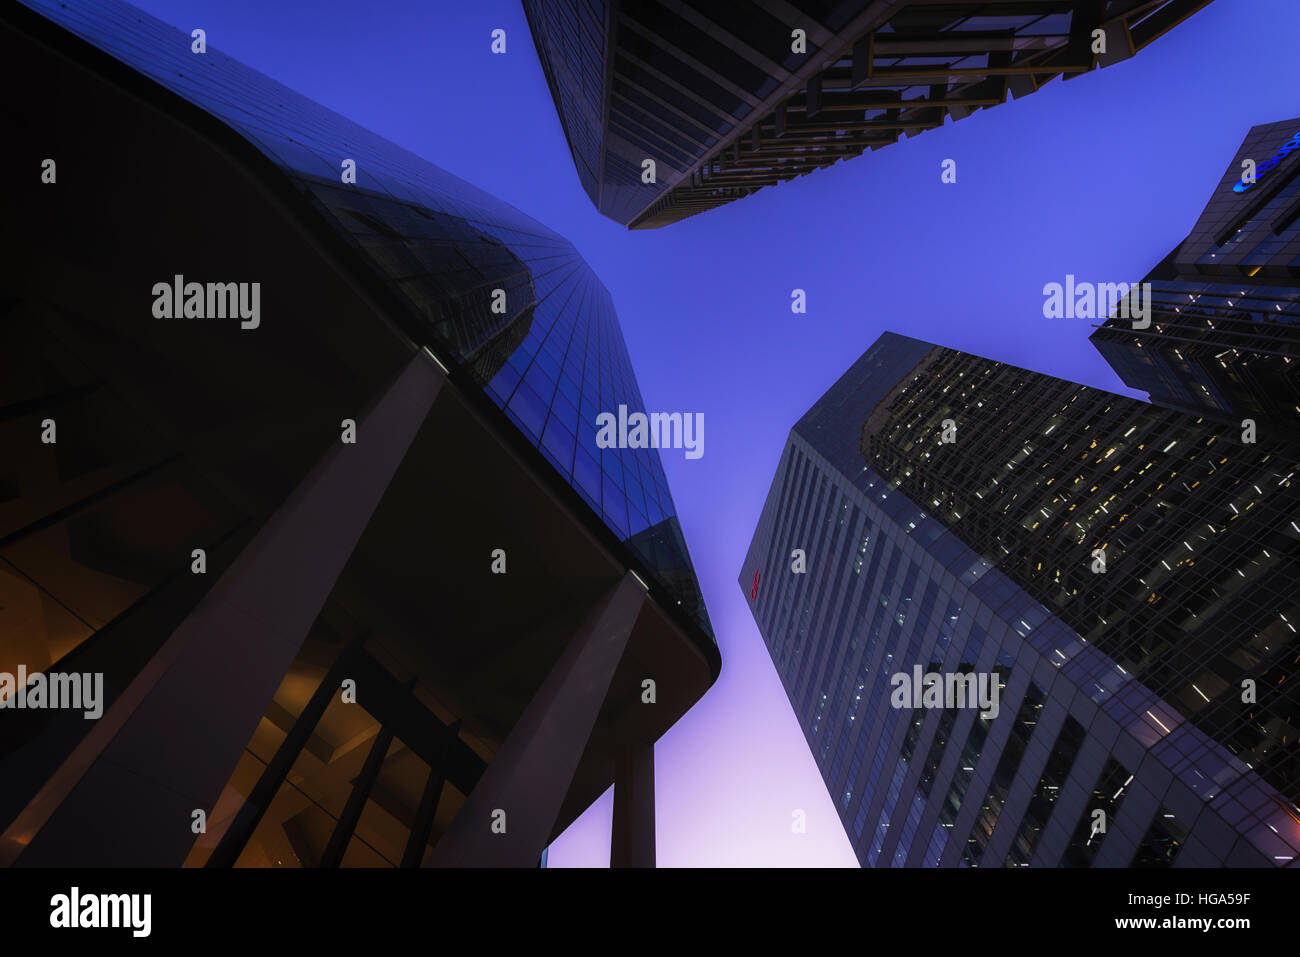 Looking up to the skyline on dusk in the Brisbane CBD and being captivated by the building shapes - Stock Image